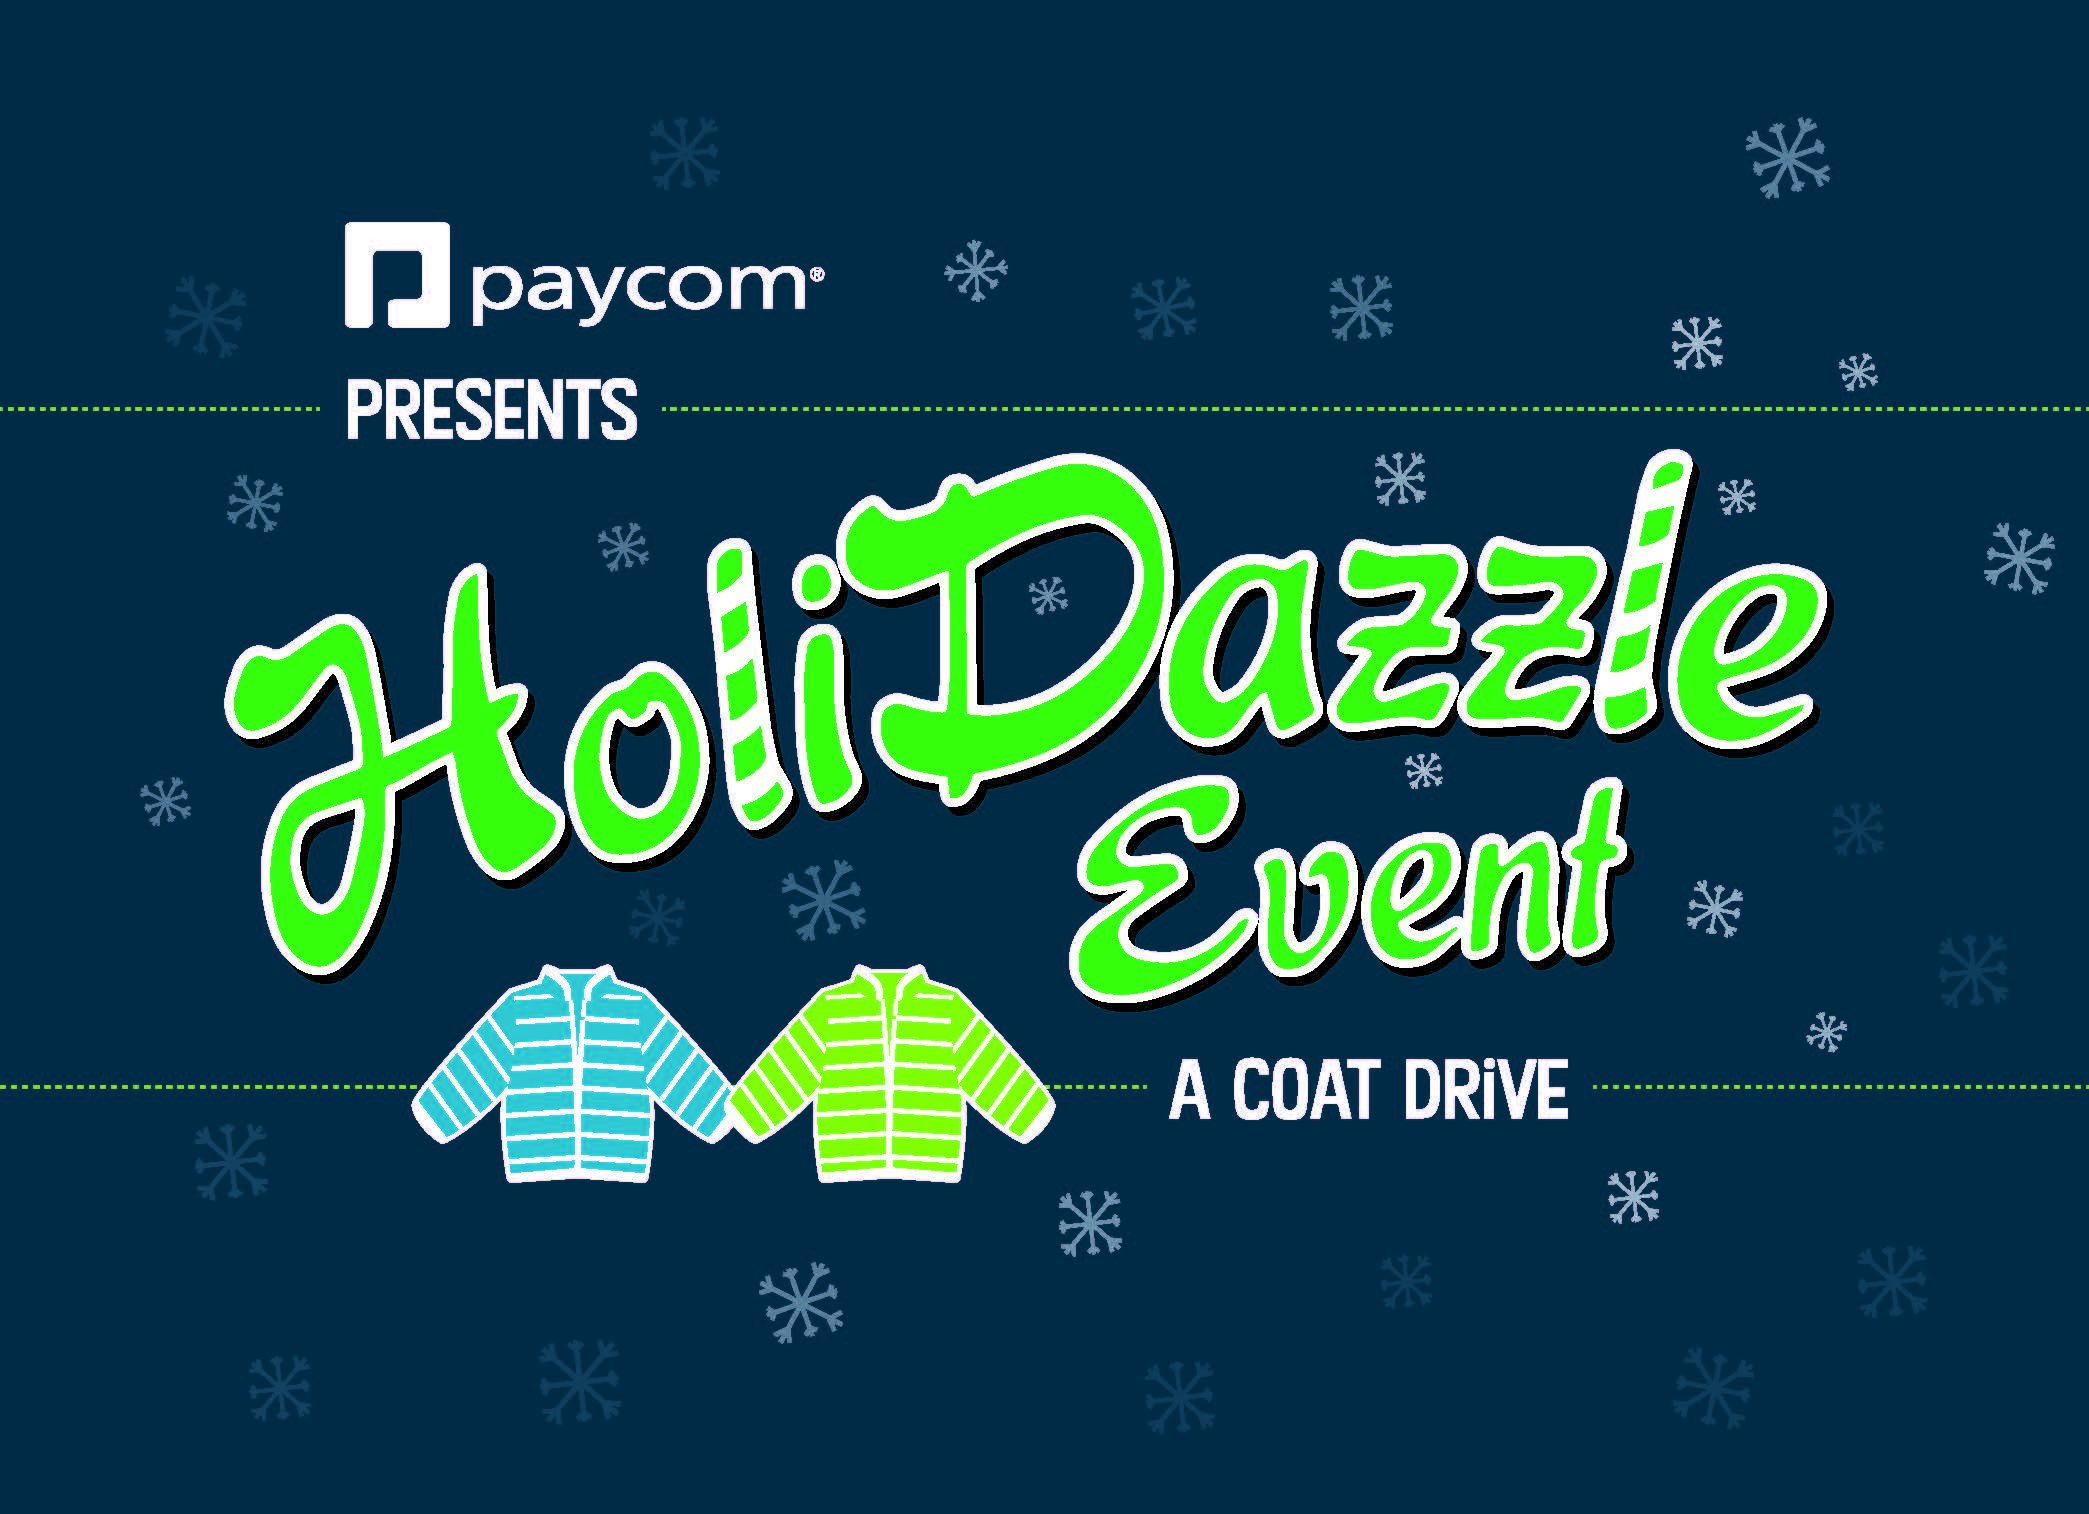 Paycom's HoliDazzle to Collect Coats in Exchange for Free Entry to Science Museum Oklahoma, Photo With Santa